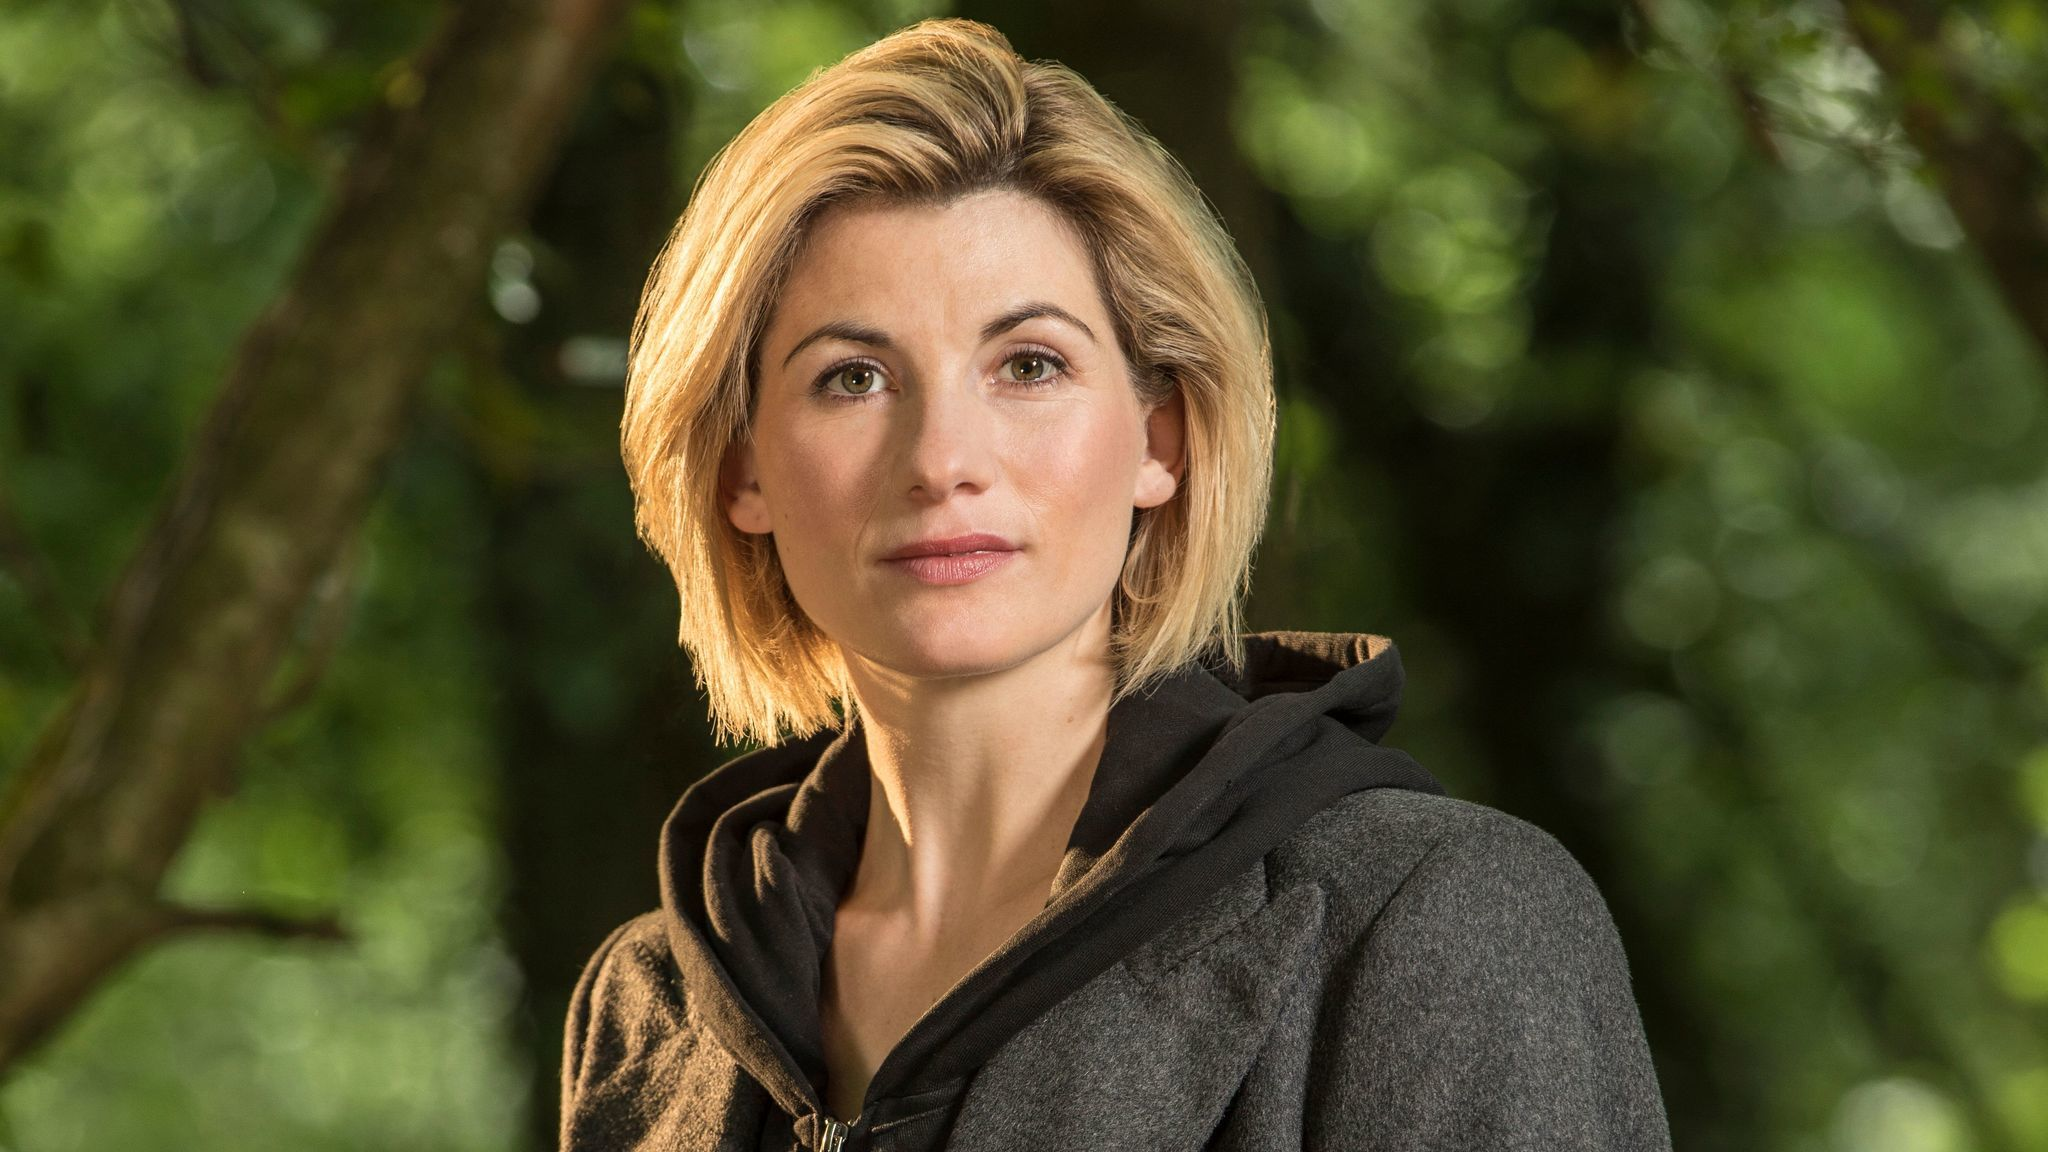 'Doctor Who's' future is Jodie Whittaker, the first woman in the lead role https://t.co/l5fLXskGsQ https://t.co/zCnDpGHSDB